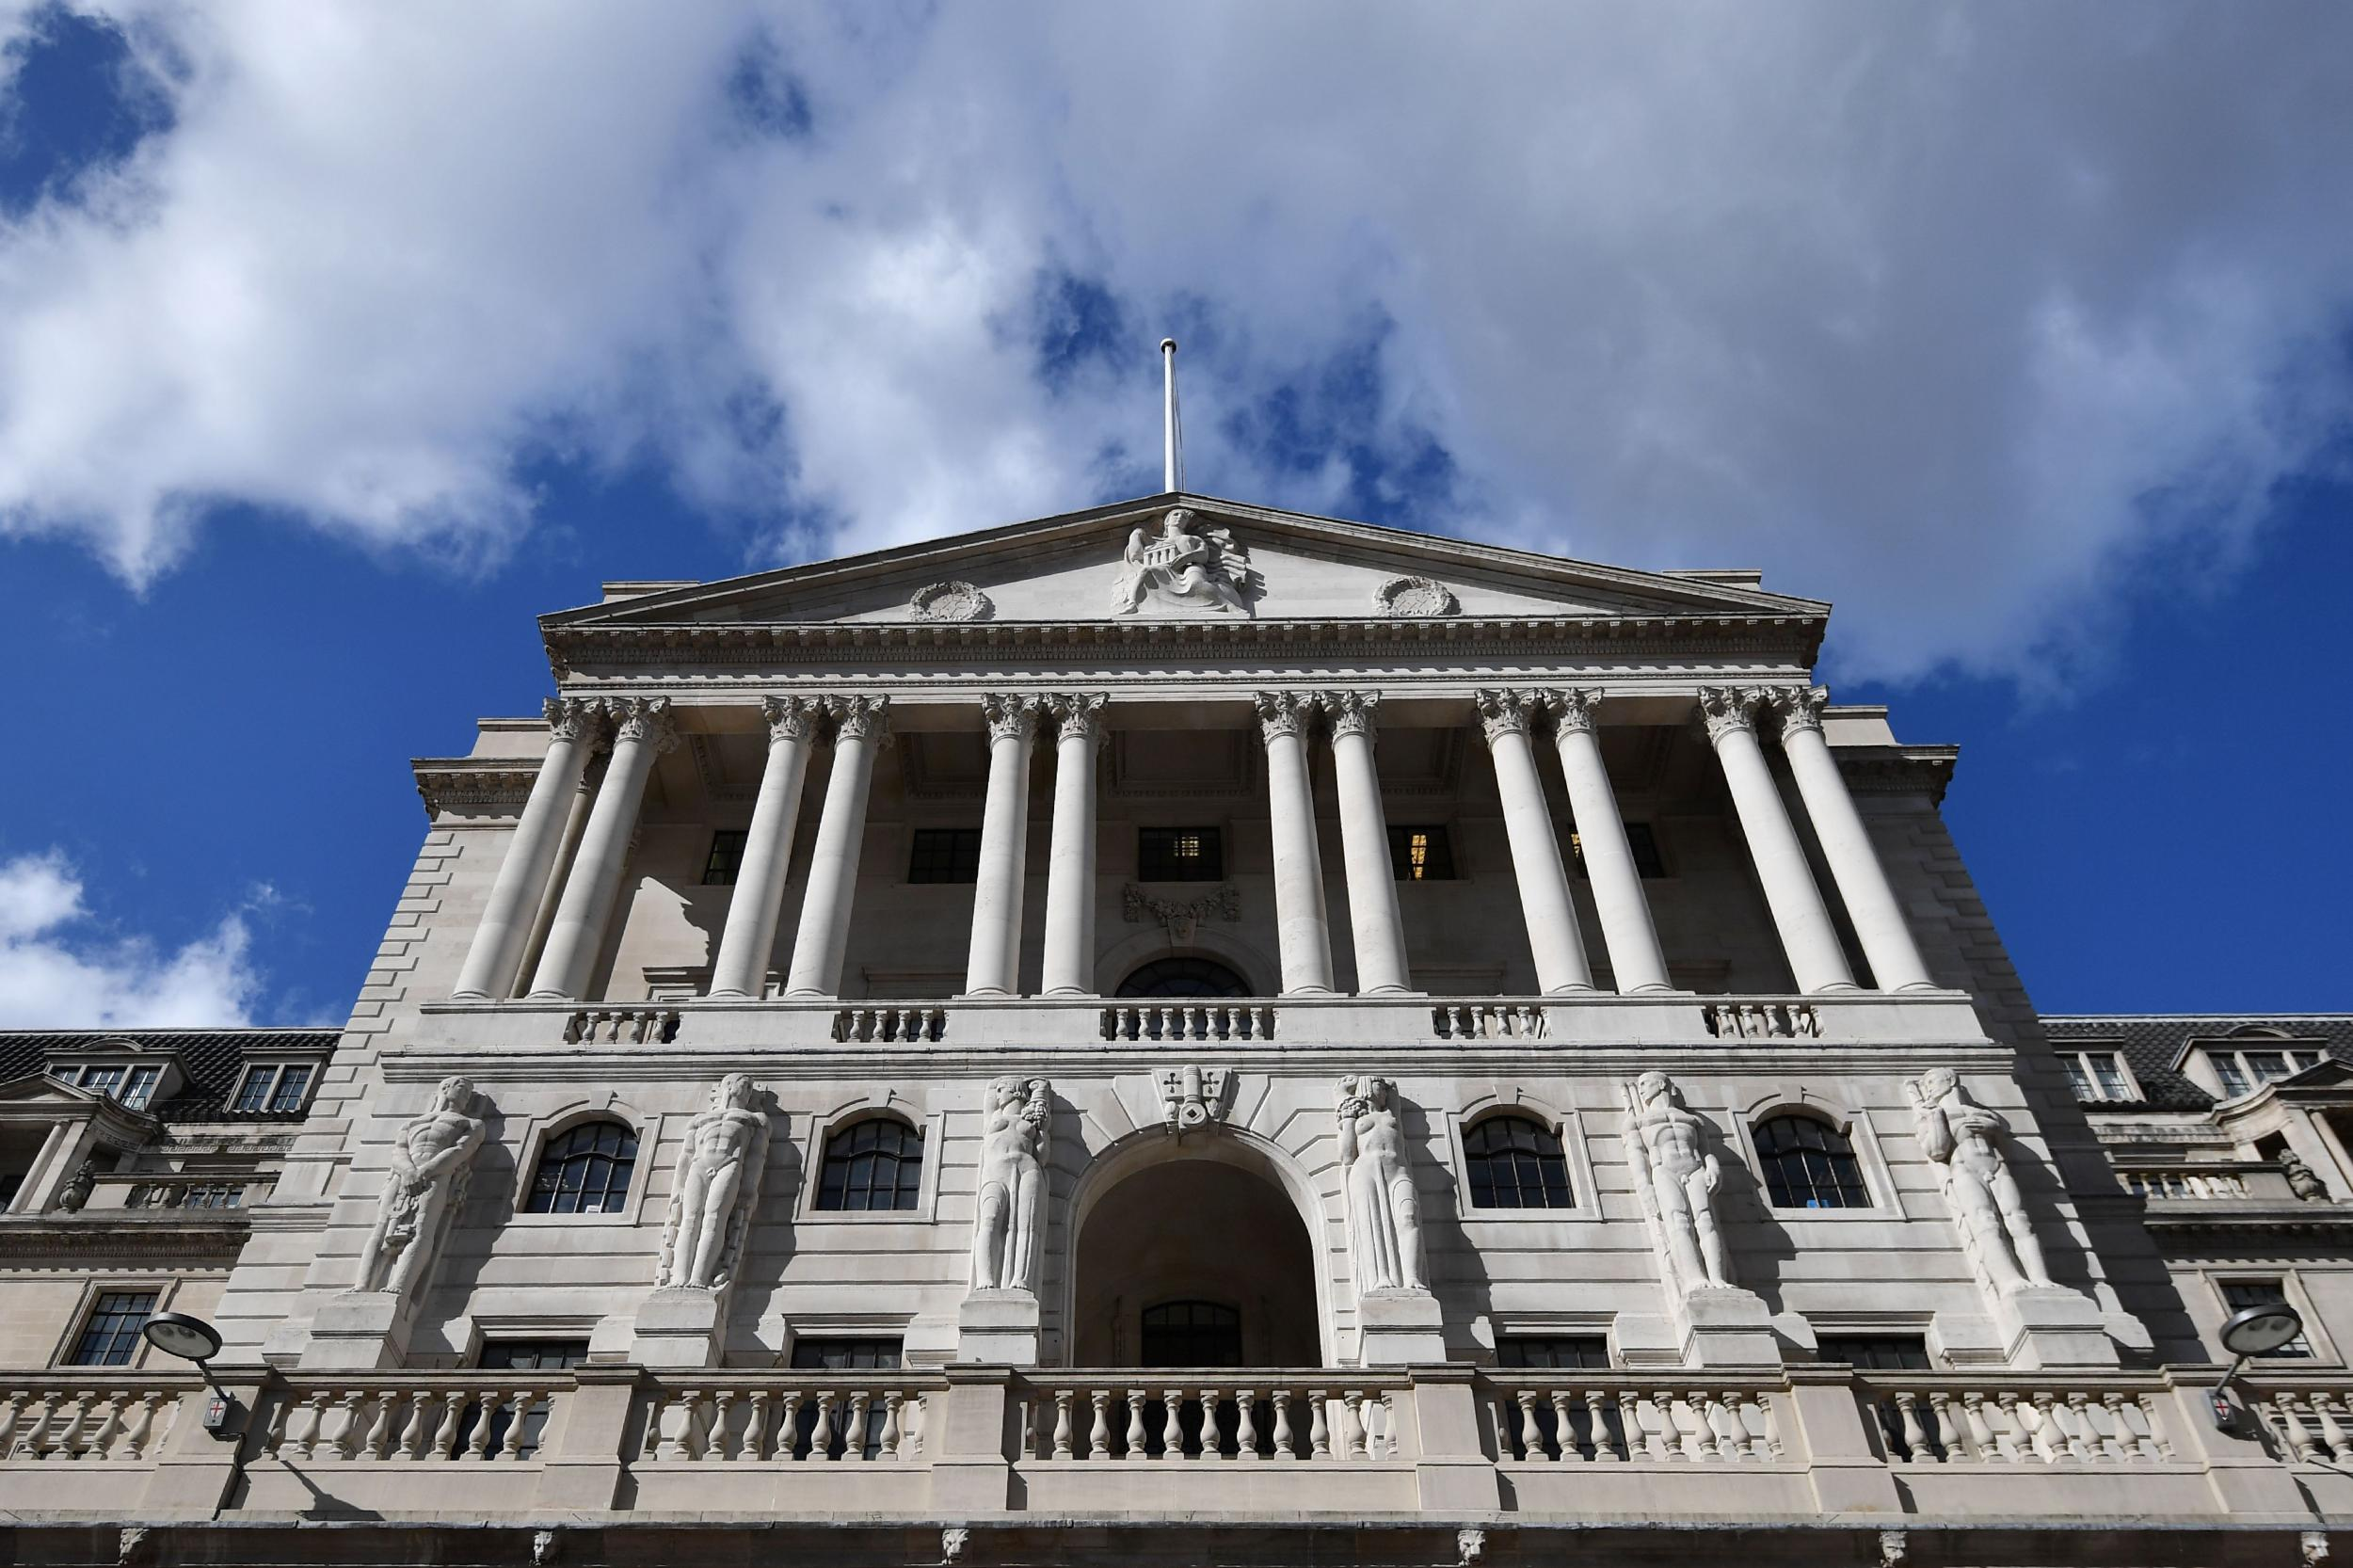 Bank of England will allow EU banks to operate as normal after Brexit